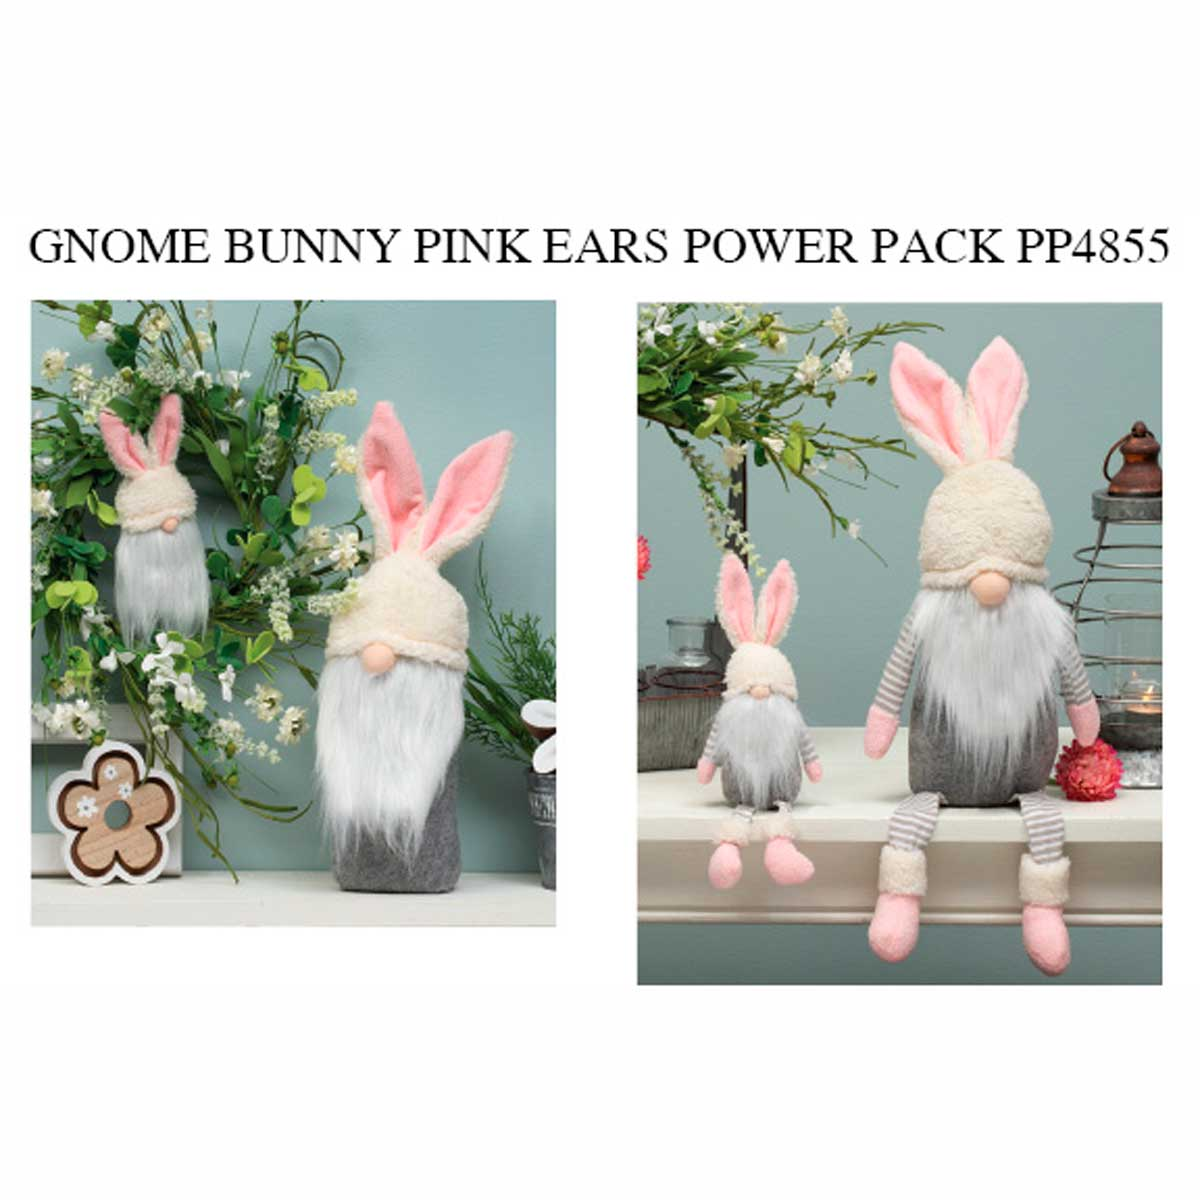 Pink Bunny Ears Gnome Power Pack 18 Units PP4855